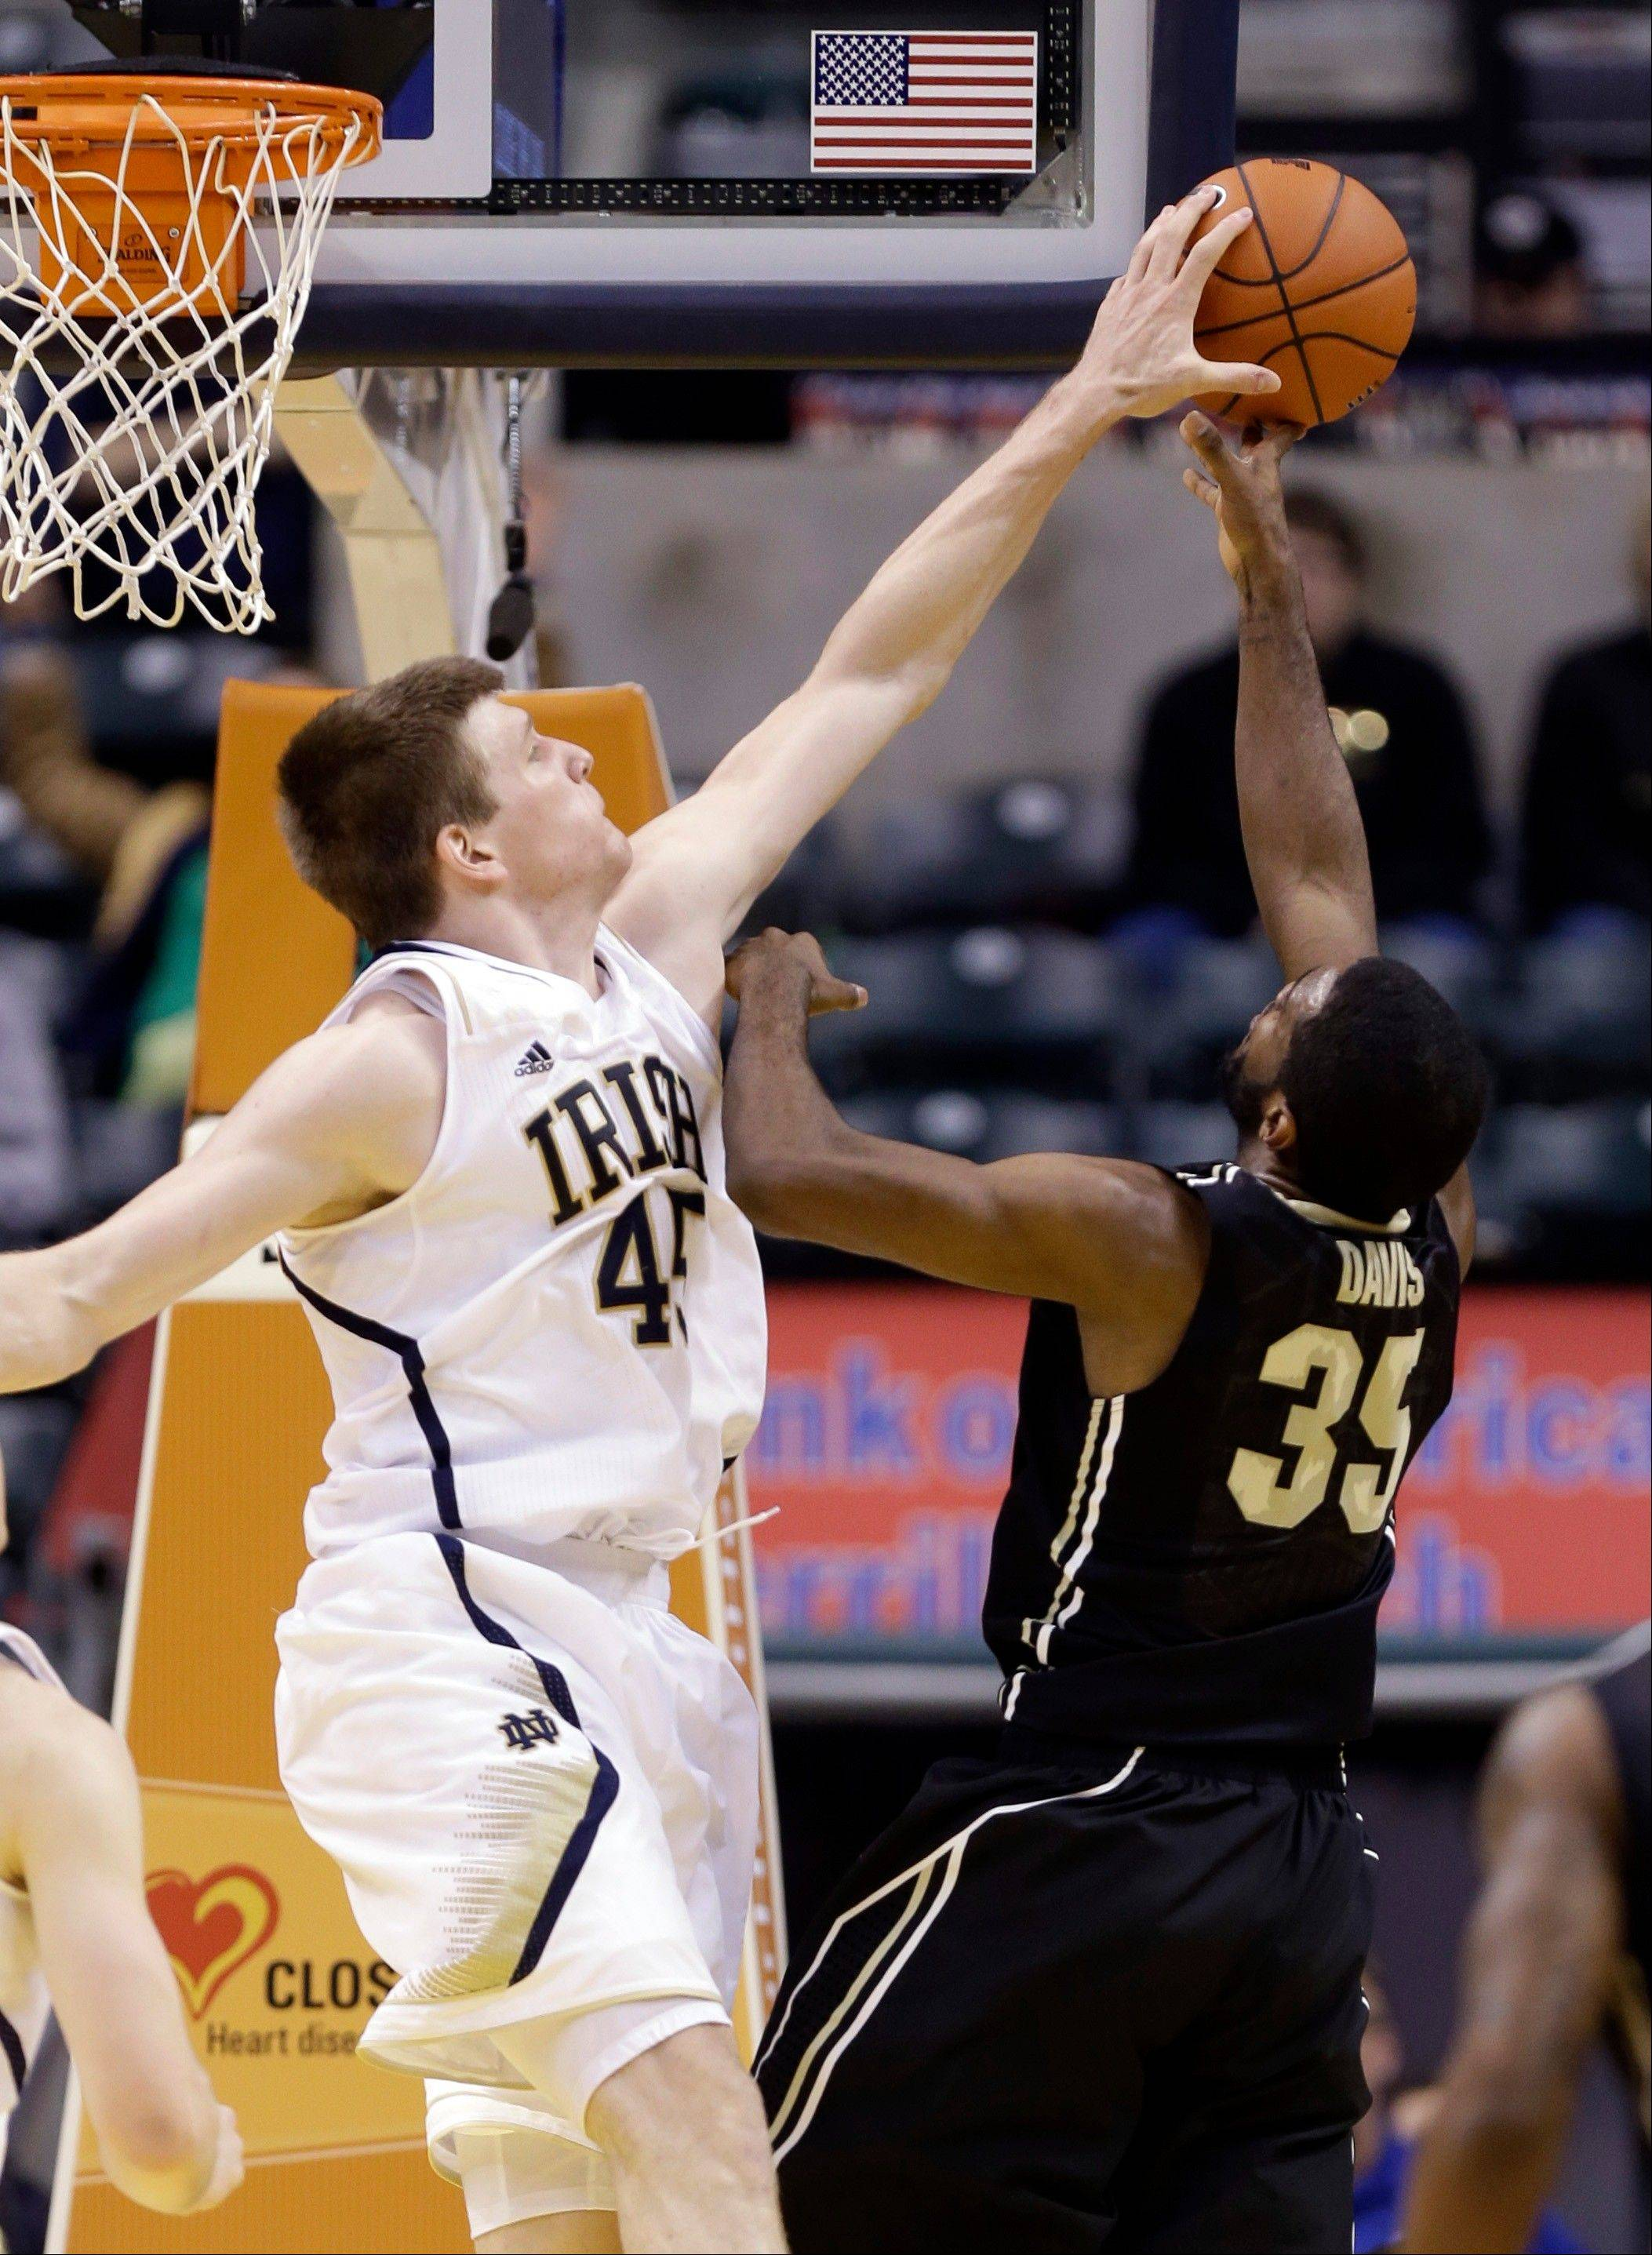 Notre Dame forward Jack Cooley, left, blocks the shot of Purdue guard Rapheal Davis Saturday during the second half in Indianapolis. Notre Dame defeated Purdue 81-68.